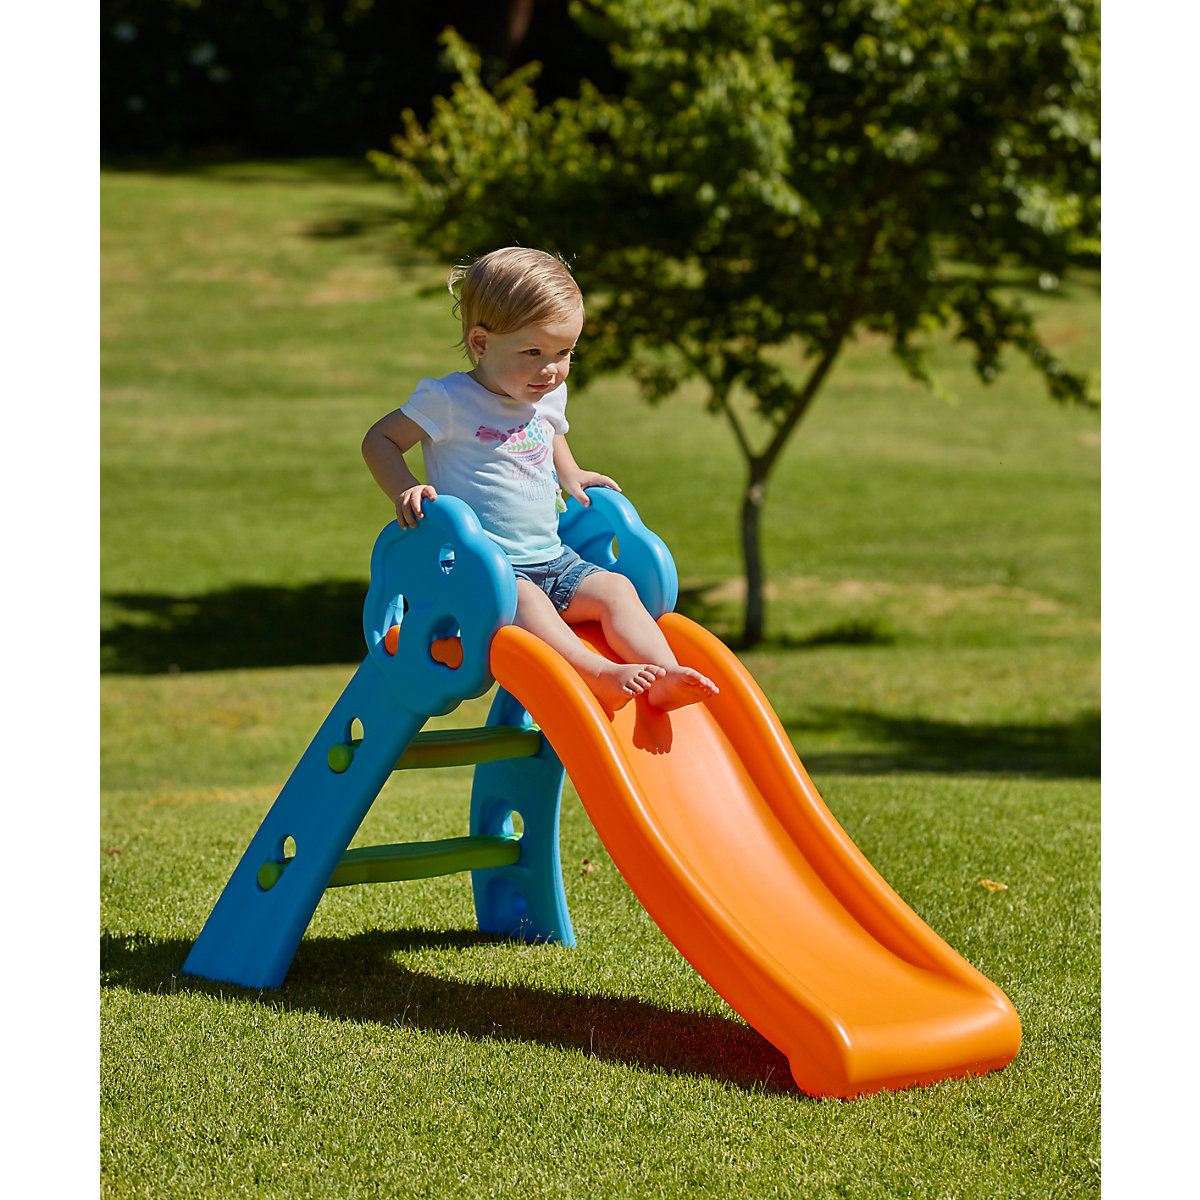 My First Slide Toy From 18 Months